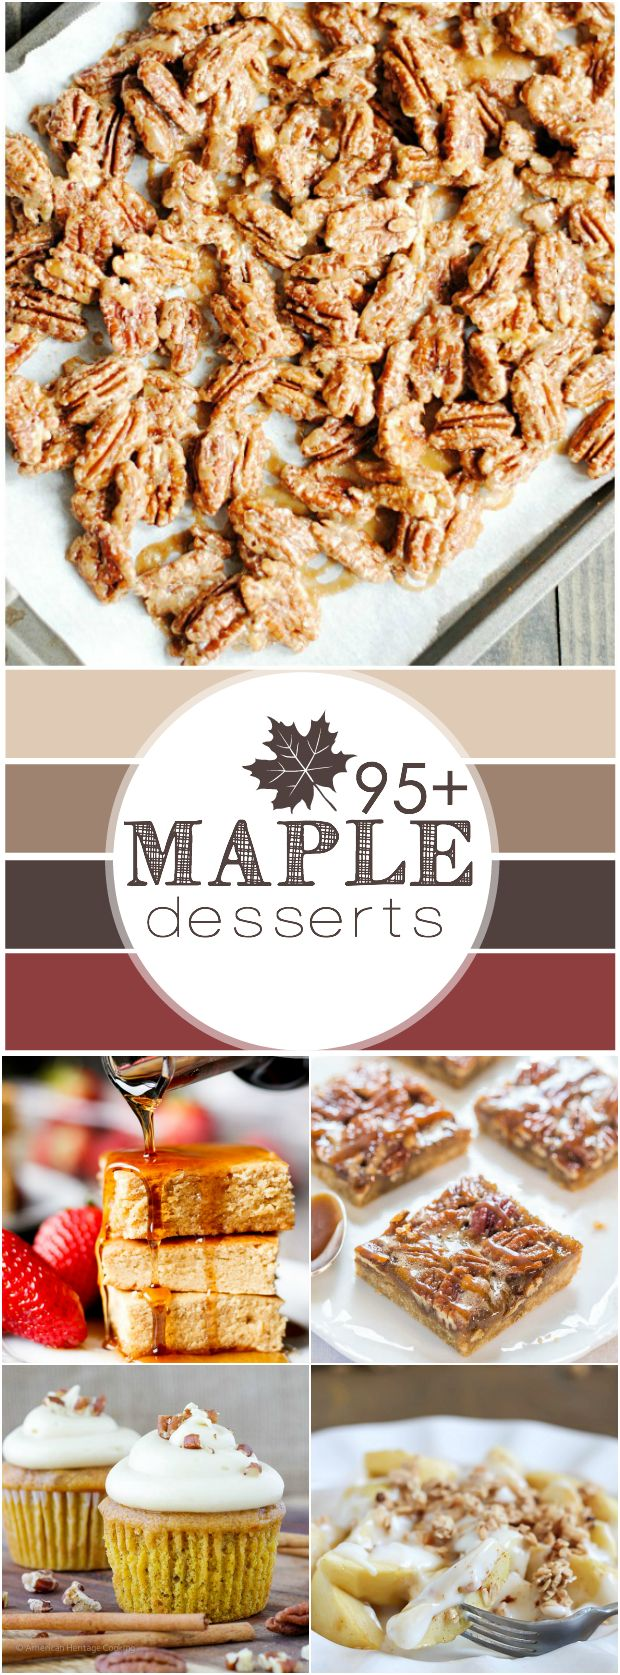 Over 95 fantastic Maple recipes that are all perfect for Fall!